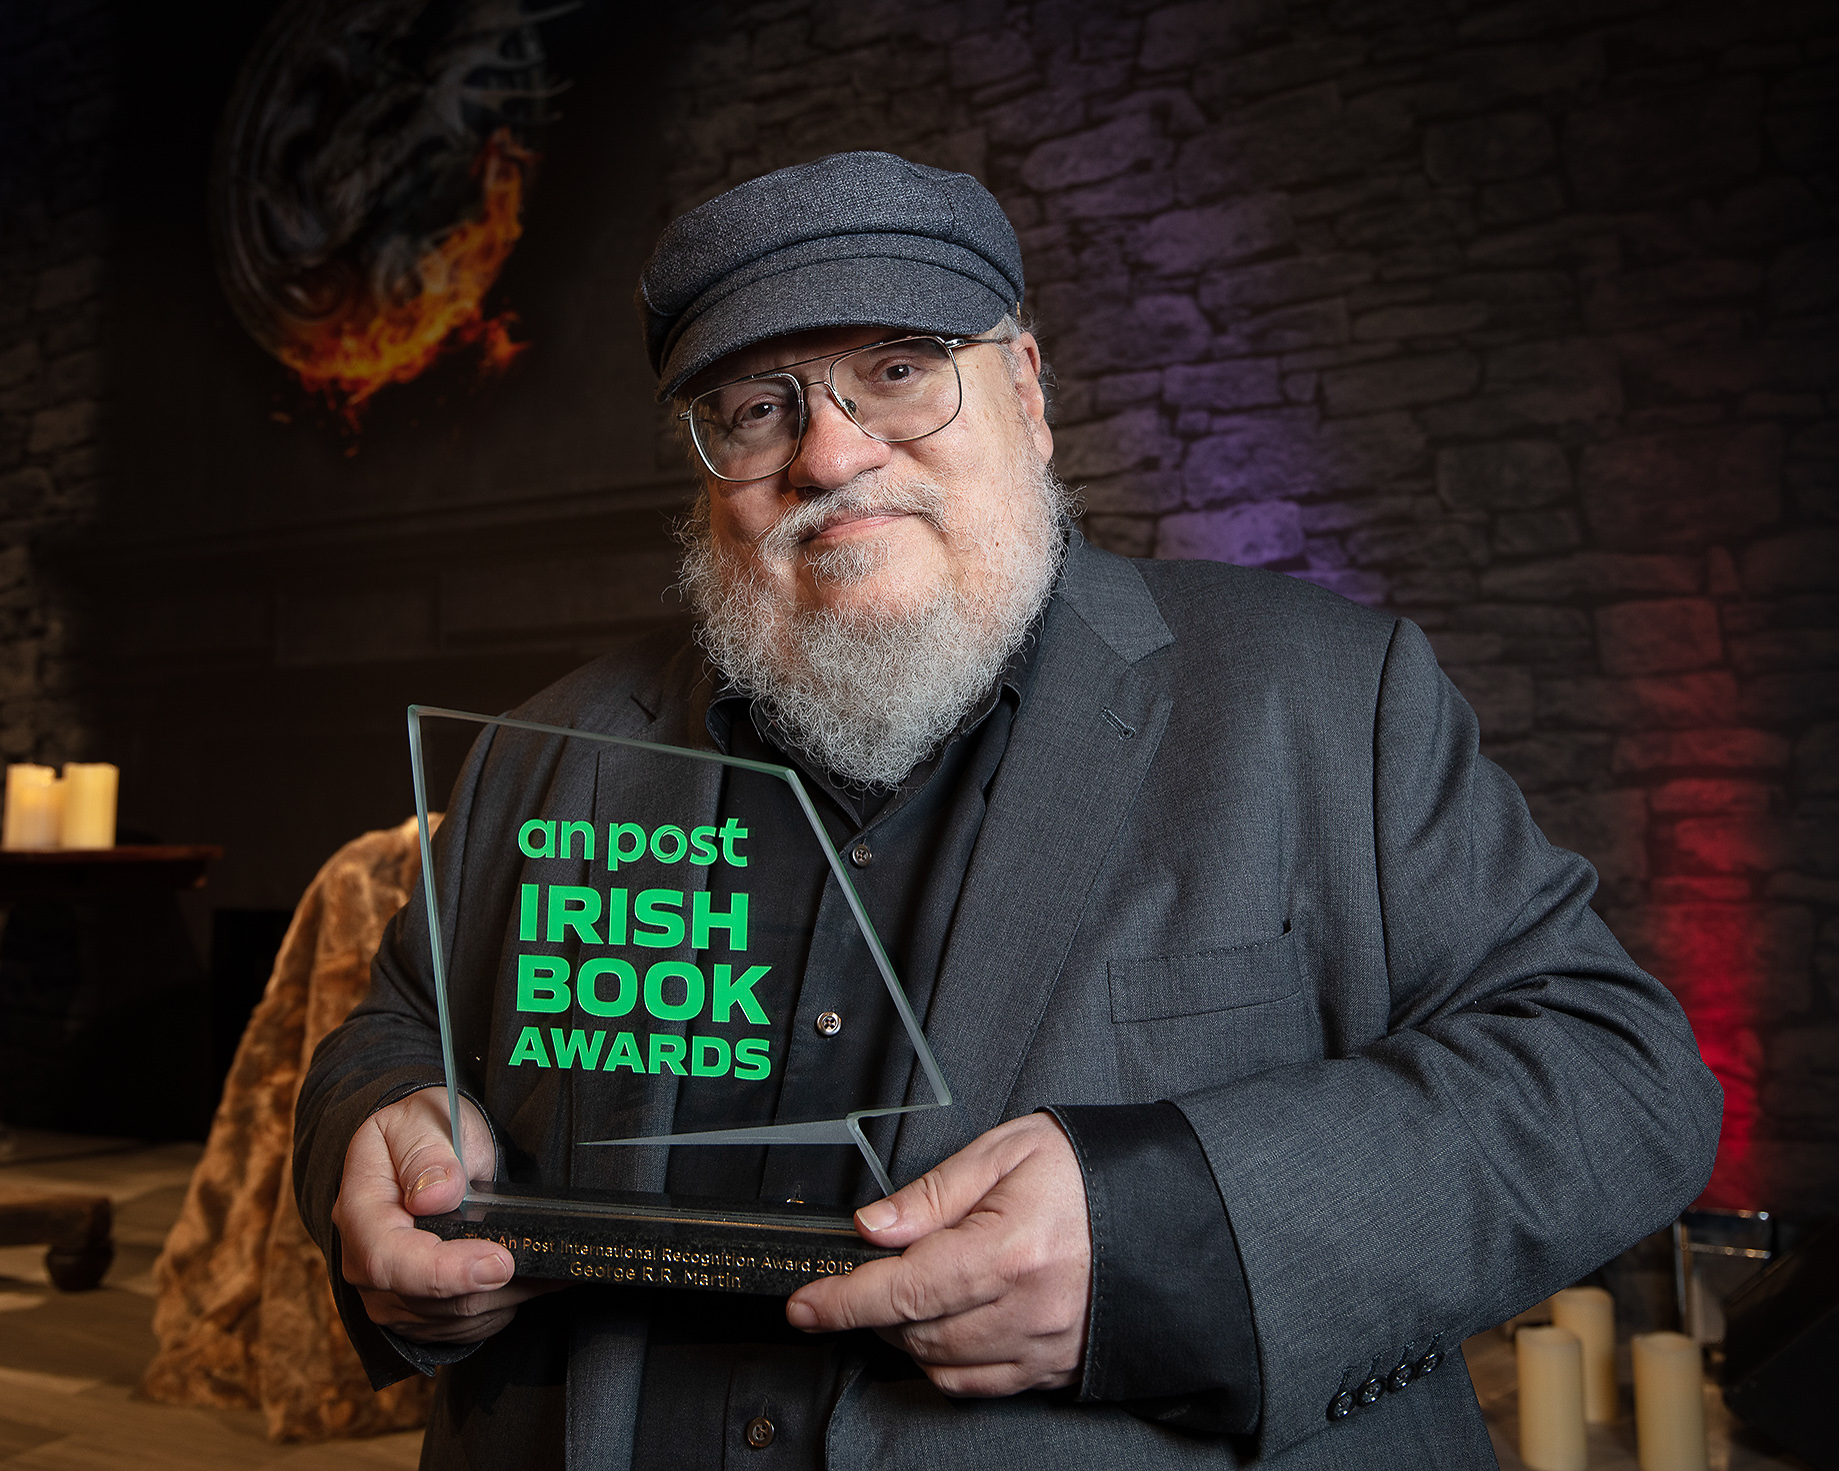 George R.R. Martin, the world-renowned author and creative force behind A Game of Thrones, has received The An Post International Recognition Award as part of this year's An Post Irish Book Awards.